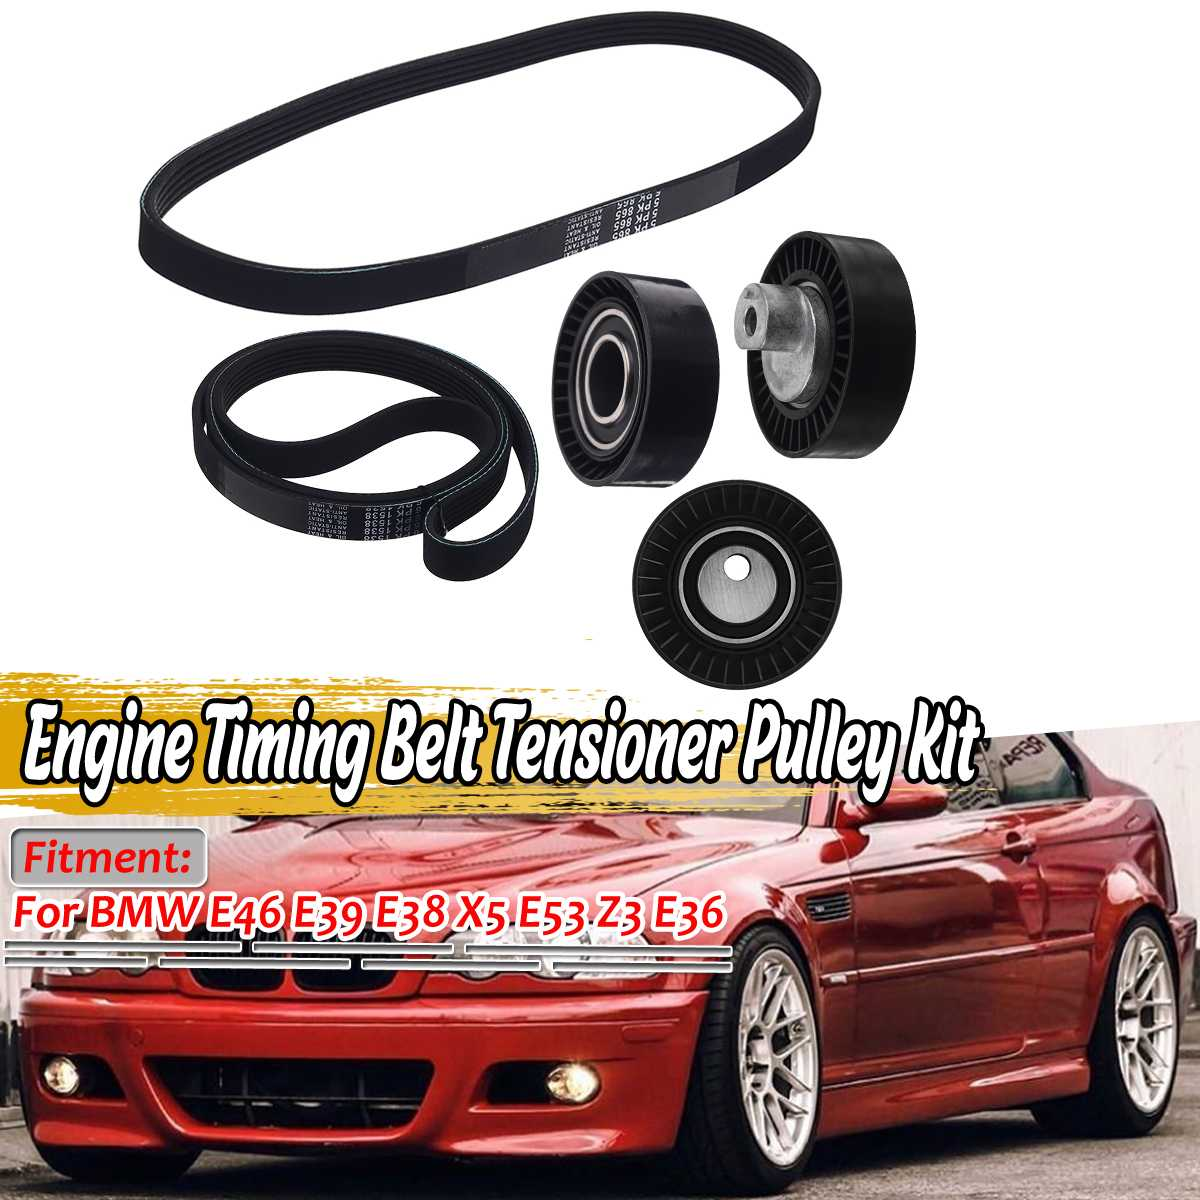 New <font><b>Car</b></font> Engine Timing Belt Tensioner <font><b>Pulley</b></font> Kit For BMW E46 E39 E38 X5 E53 Z3 E36 11281437475 11281706545 1706545 image